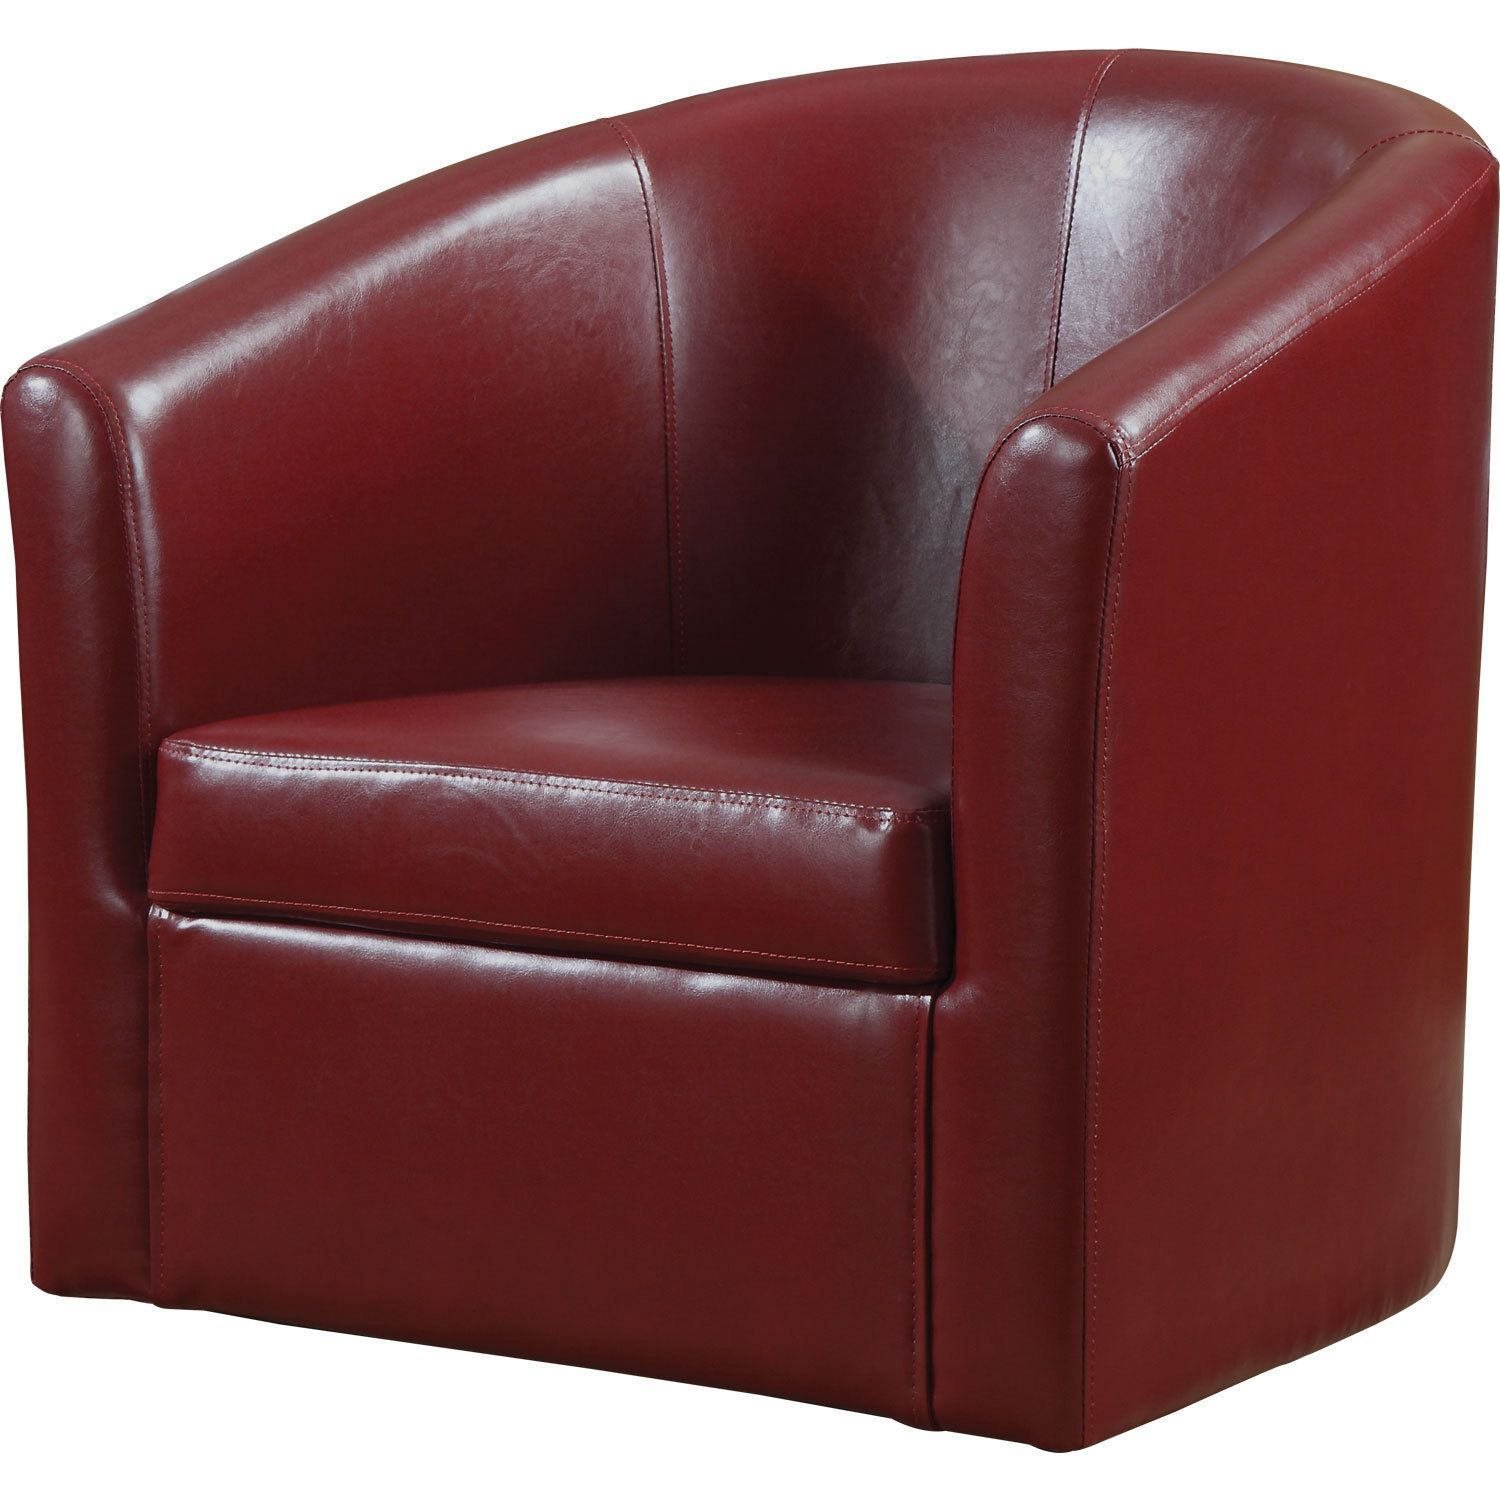 Coaster company vinyl swivel accent chair red accent